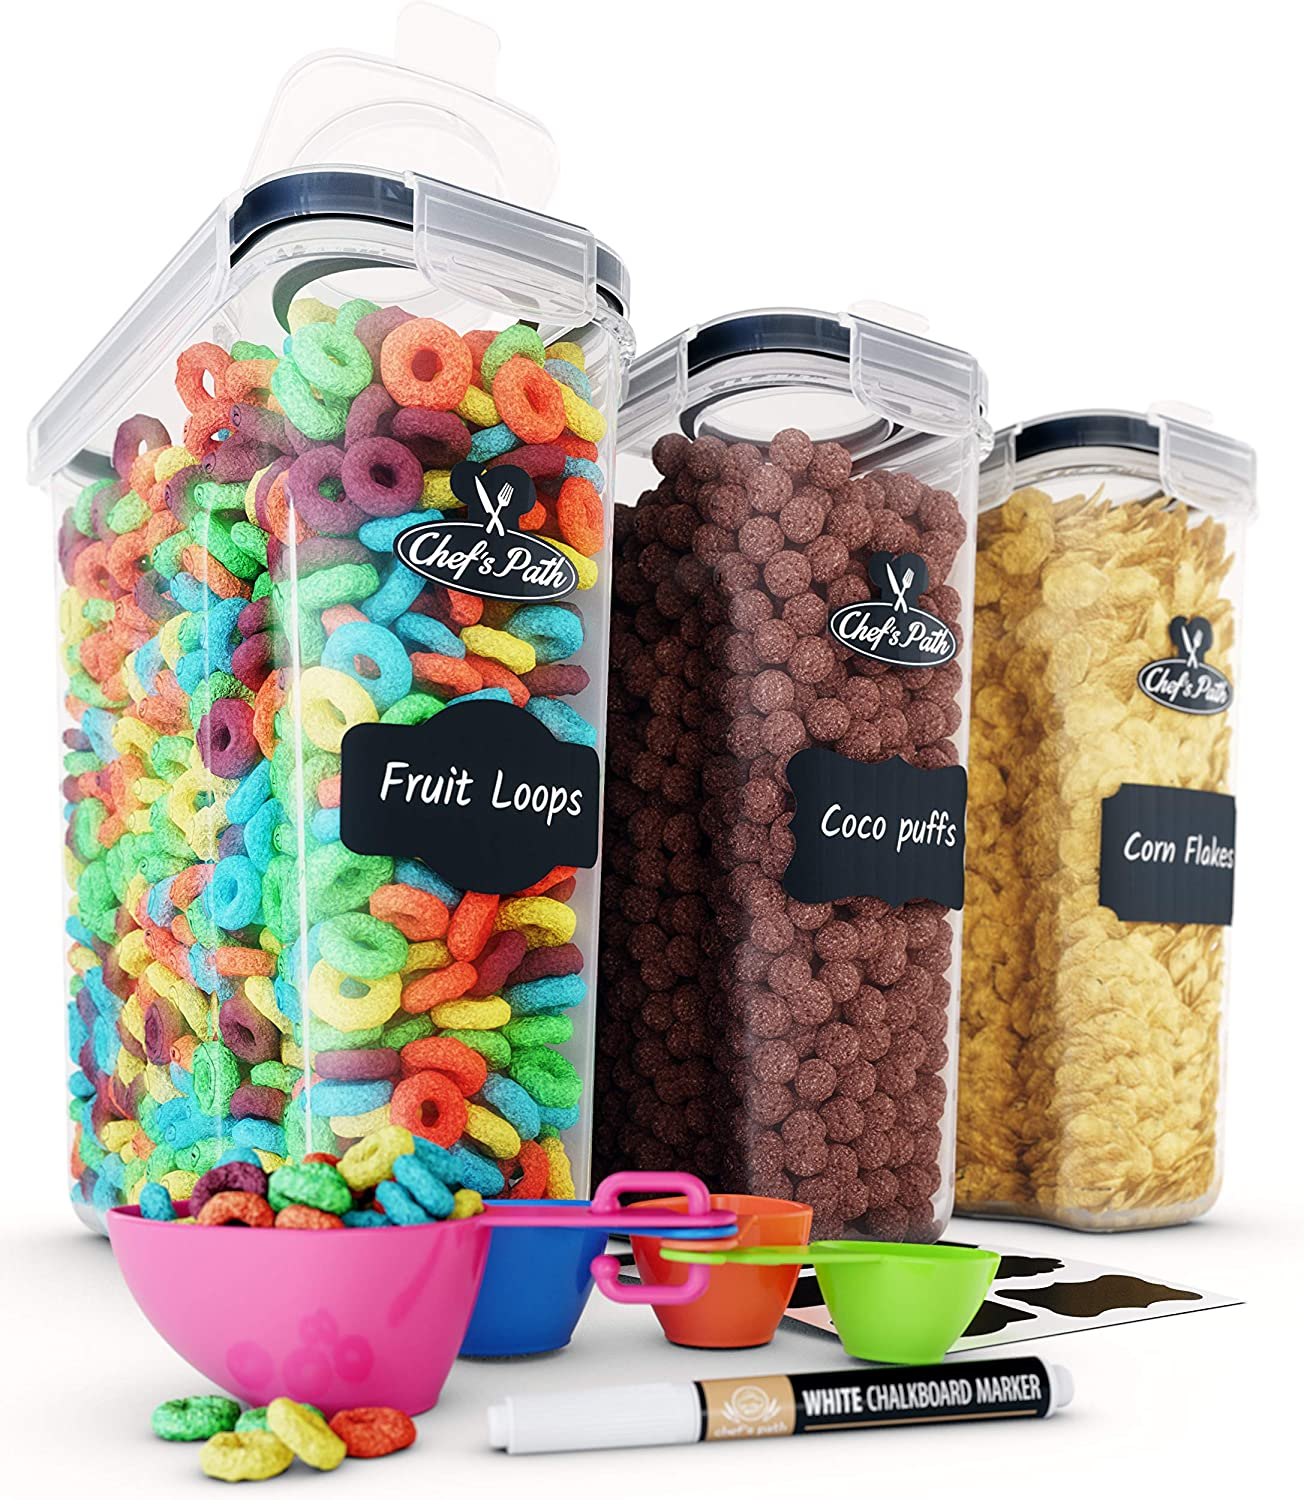 Cereal Container Storage Set - Airtight Food Storage Containers, 8 Labels, Spoon Set & Pen, Great for Flour - BPA-Free Dispenser Keepers (135.2oz) - Chef's Path (3): Kitchen & Dining